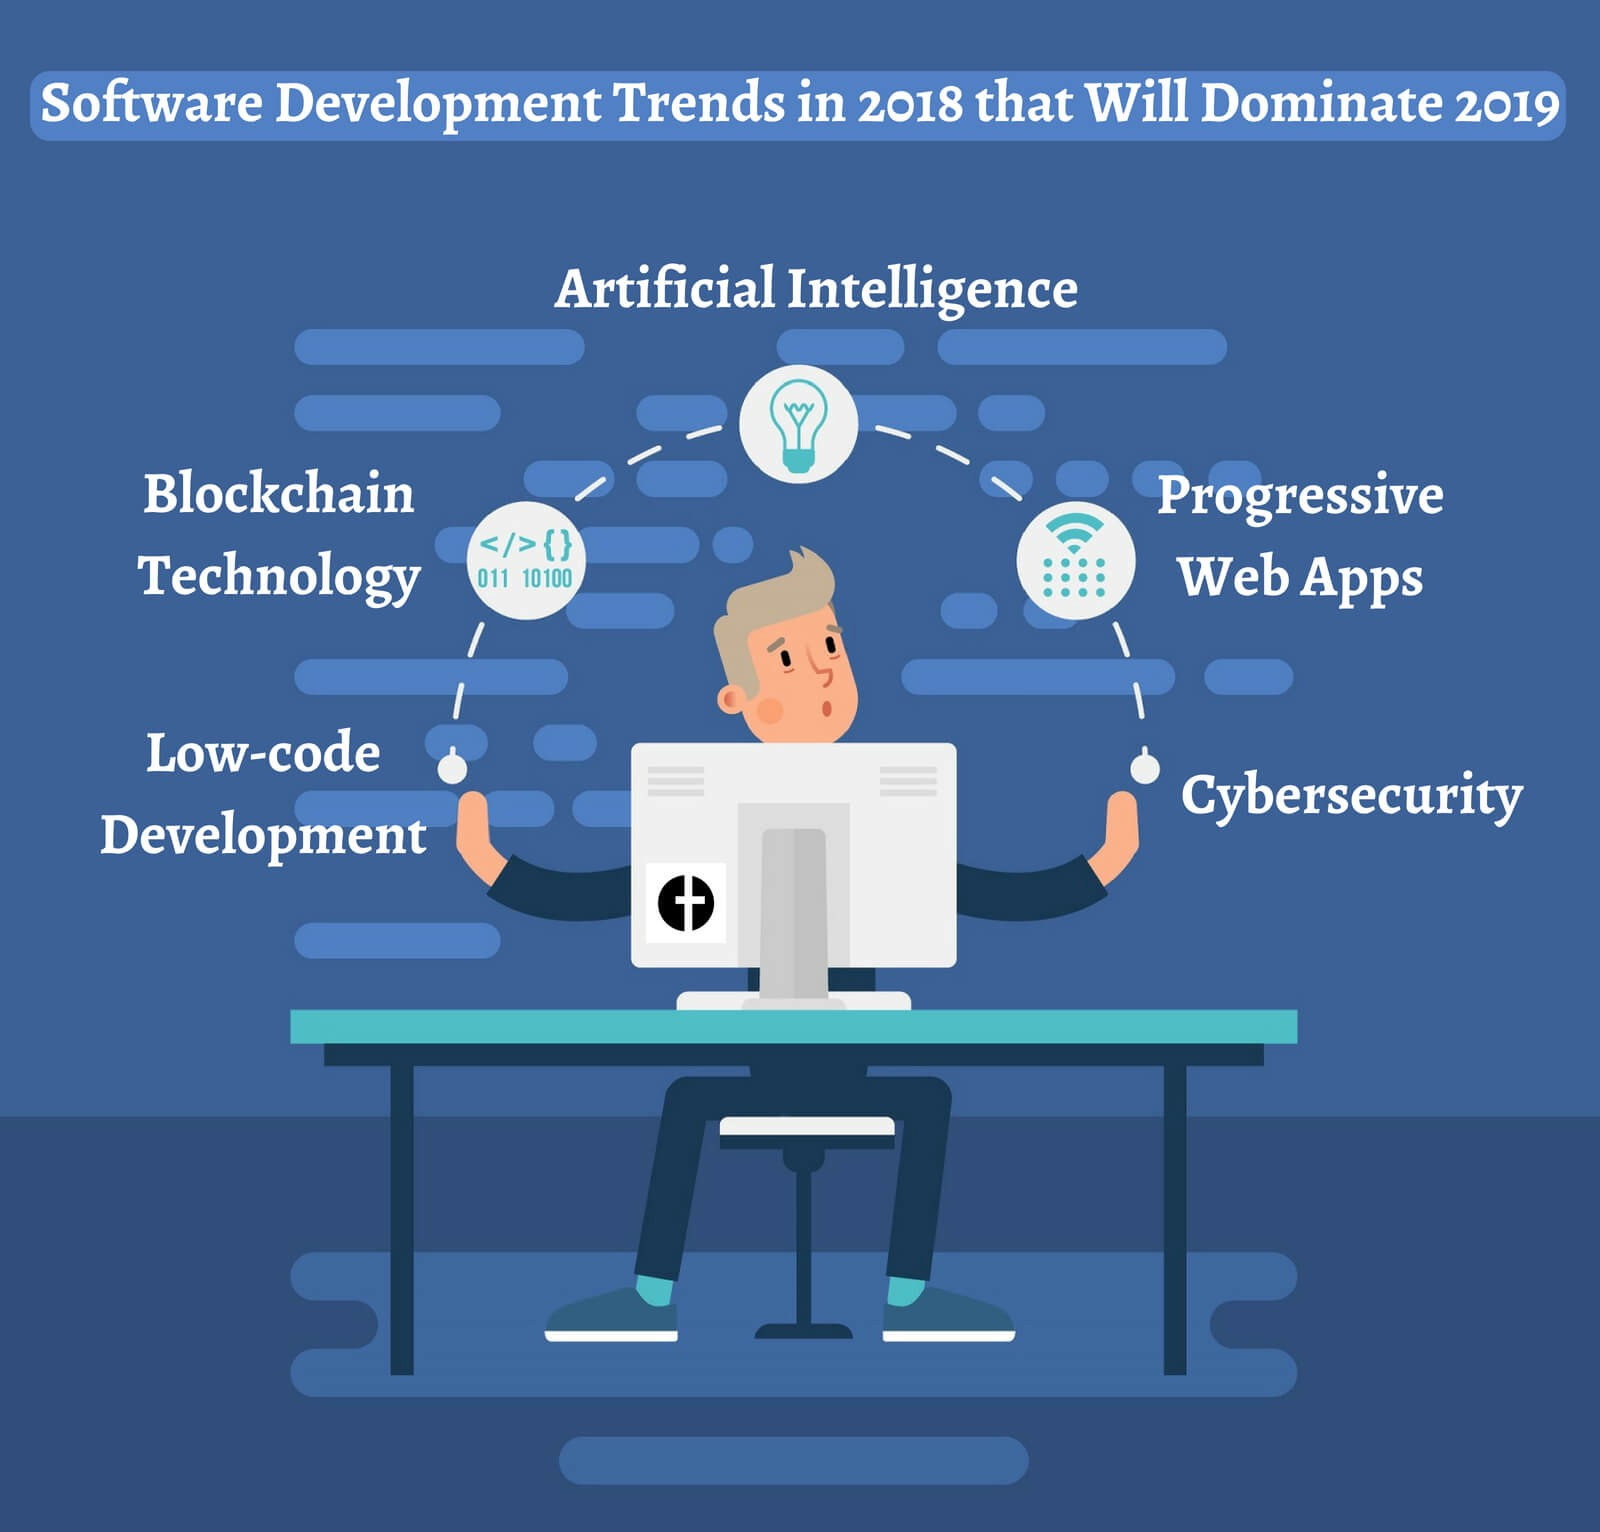 Software Development Trends In 2018 That Will Dominate 2019